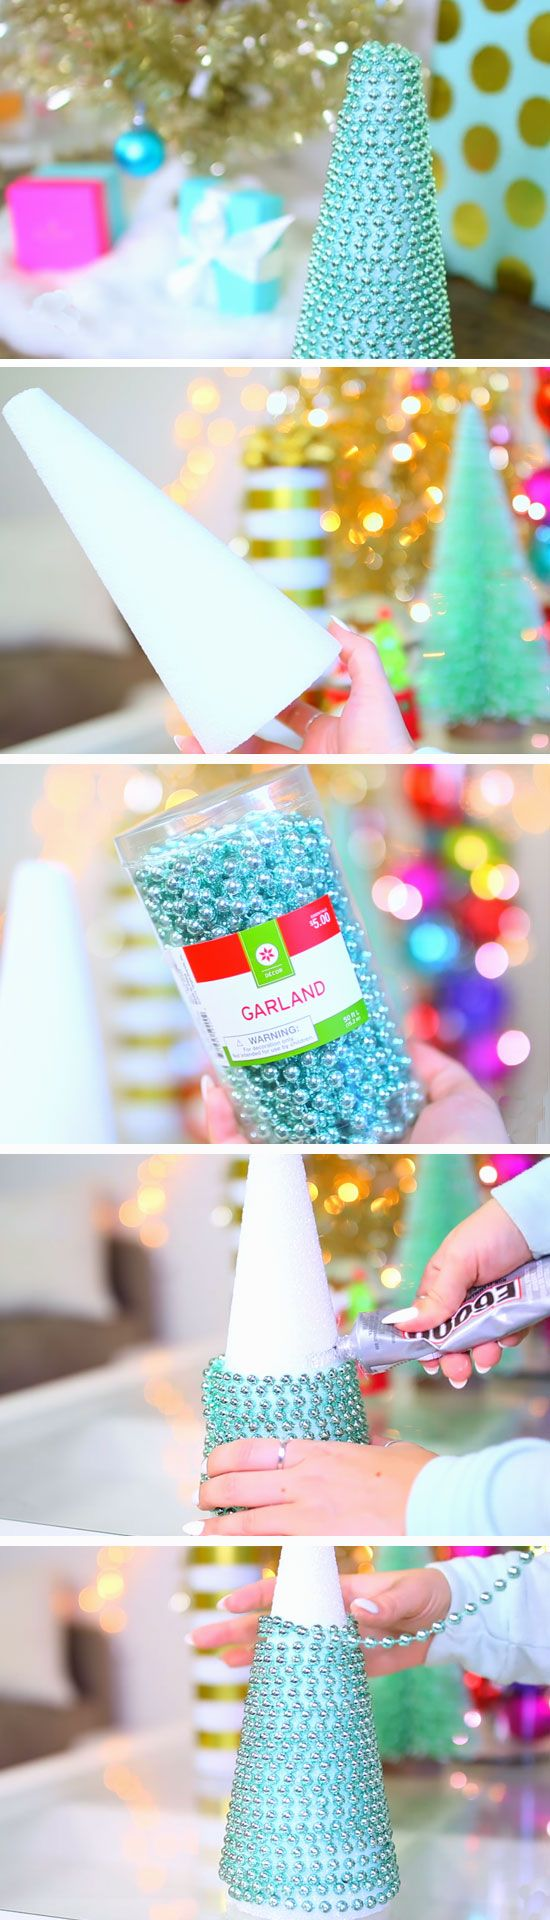 Garland Christmas Tree | 20 DIY Christmas Bedroom Decor Ideas for Teen Girls